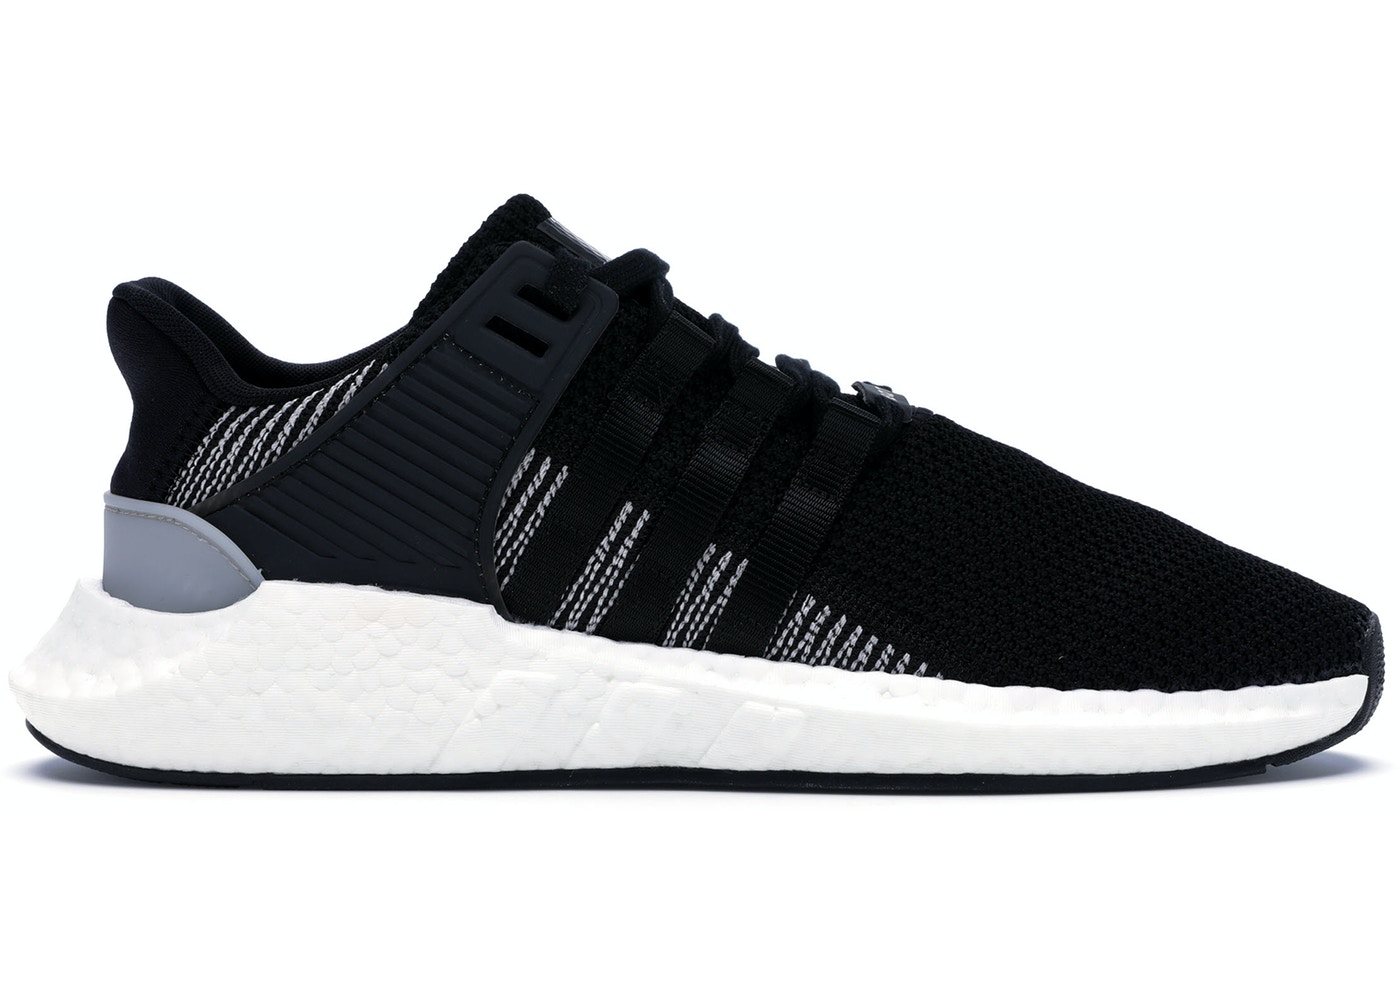 promo code 3fa7b c9c9e adidas EQT Support 9317 Black White - BY9509